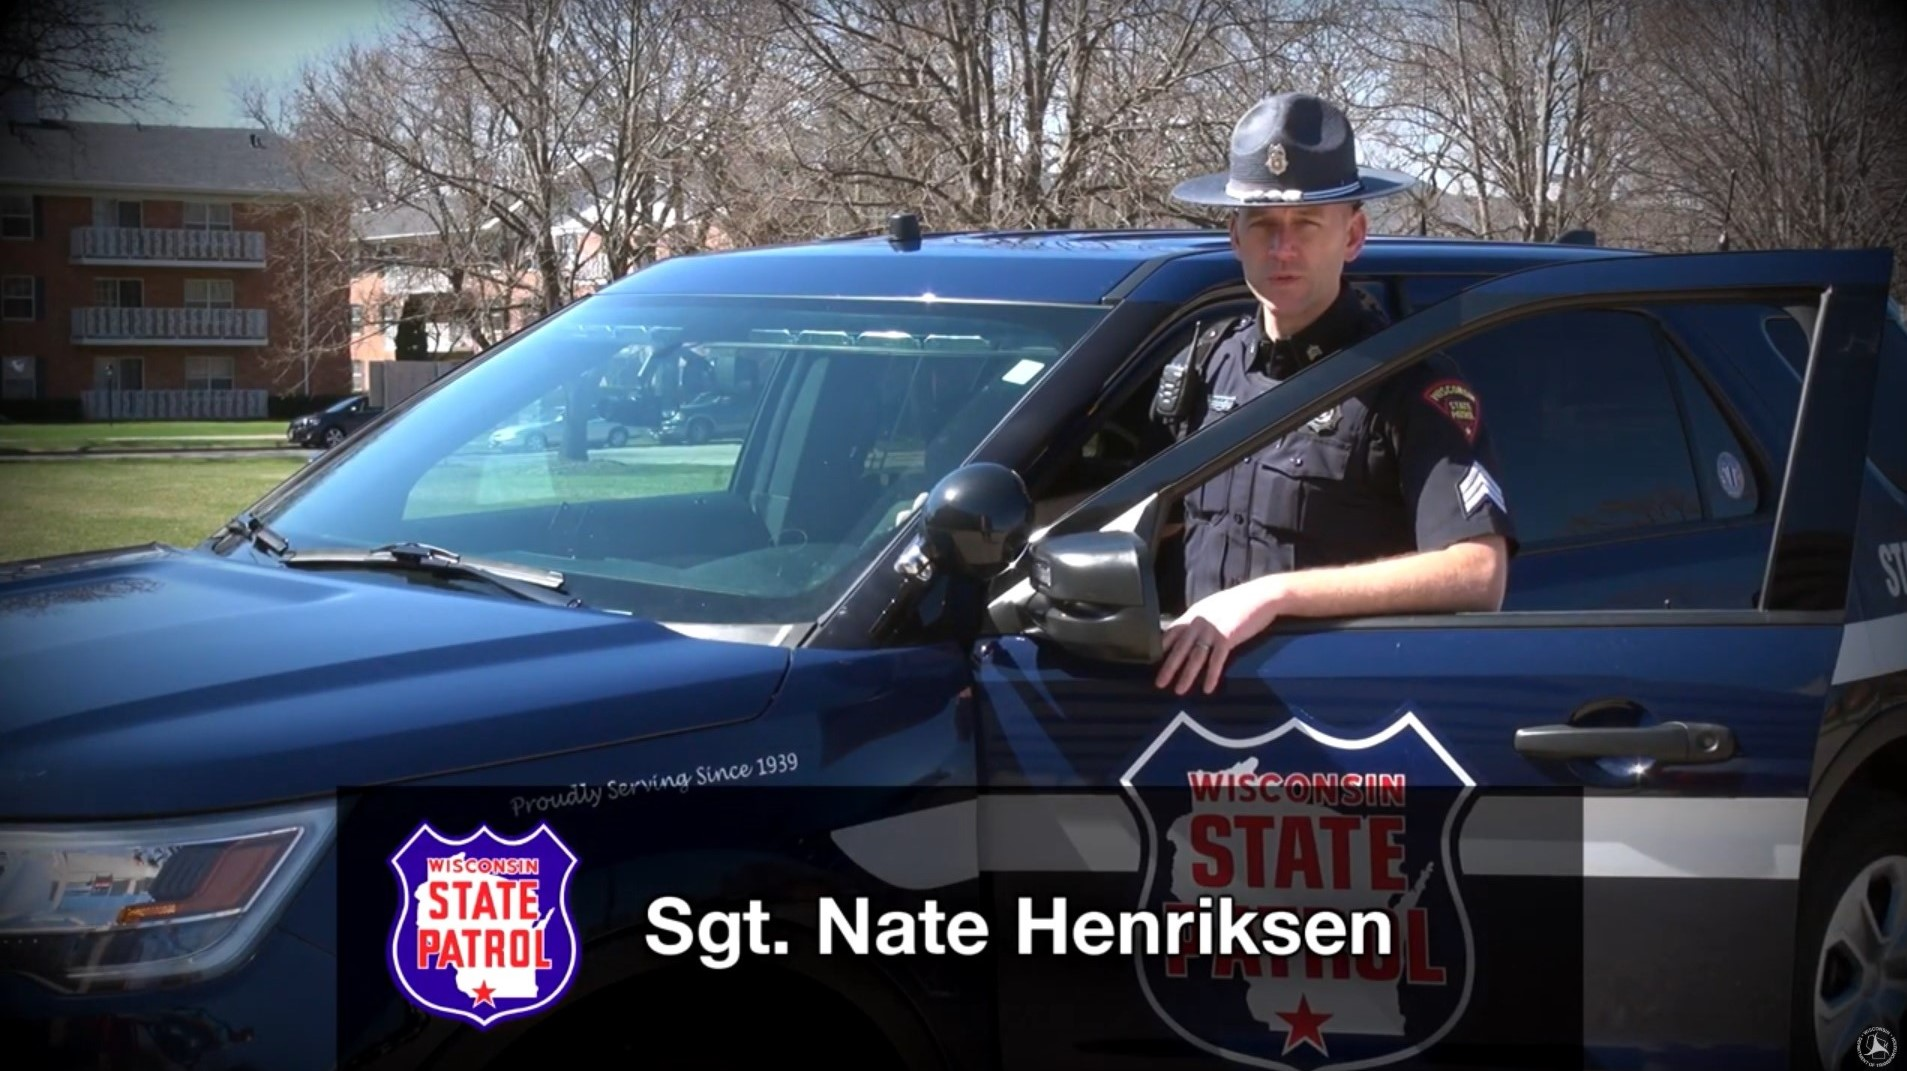 School Bus Safety by Sgt. Nate Henriksen of Wisconsin State Patrol